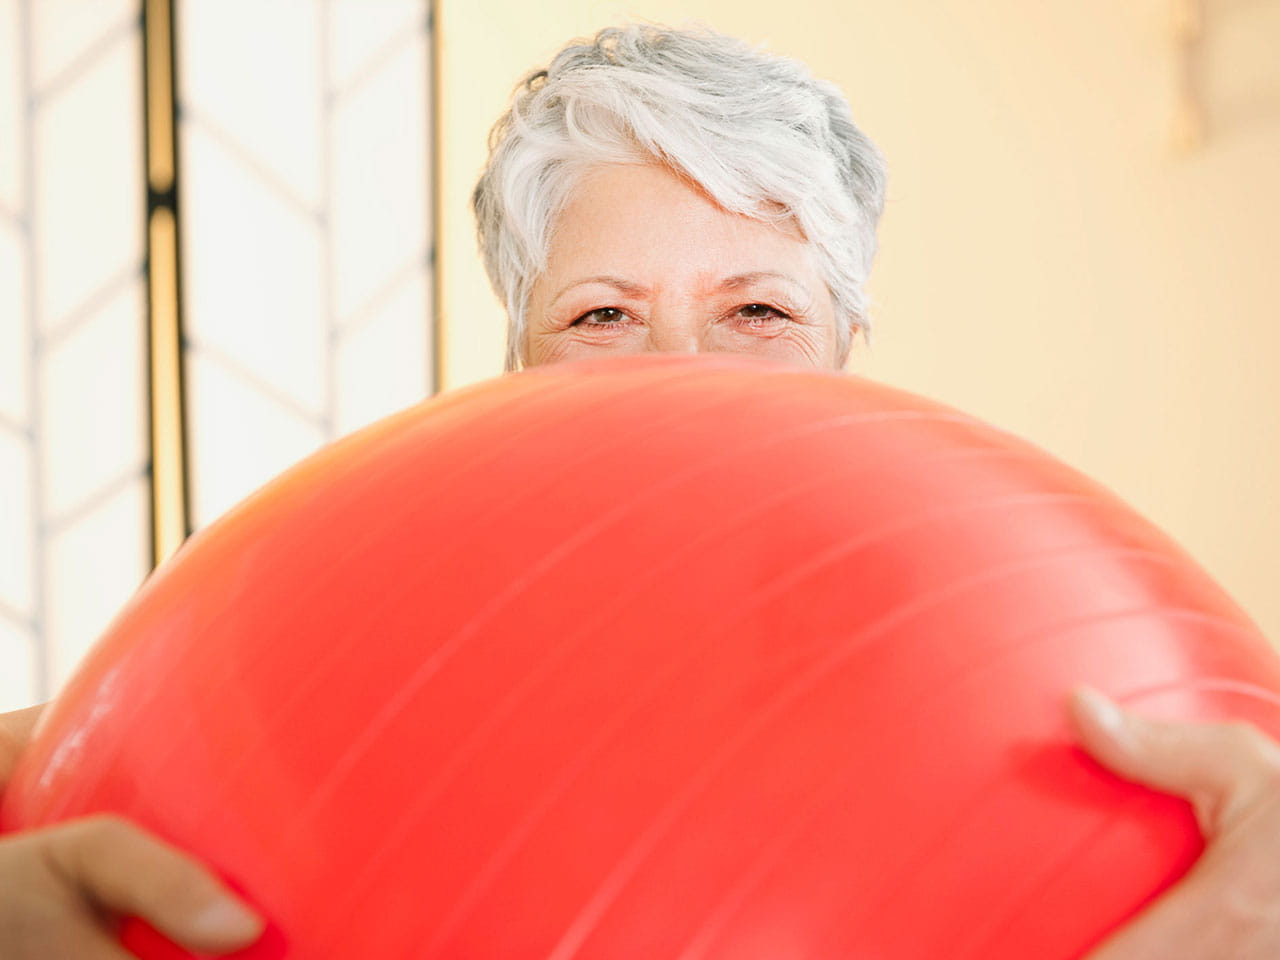 Grey haired lady holding gym ball with smiley eyes